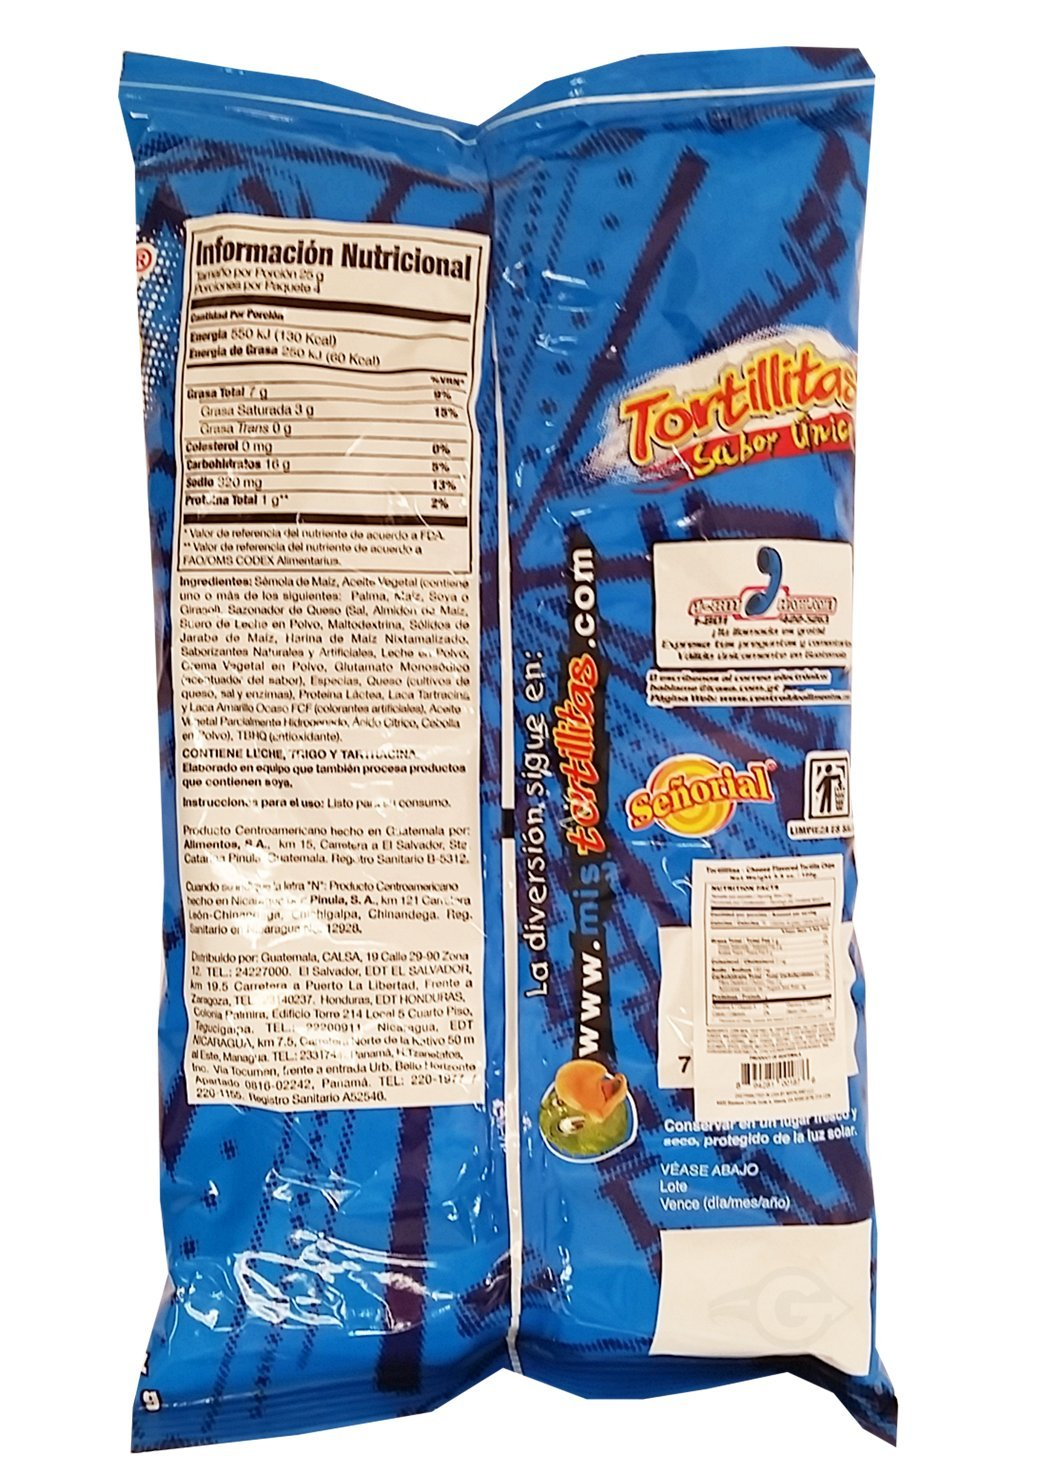 Amazon.com : Tortilla Senorial Family Pack Snack 3.5 oz - Chips Paquete Familiar (Pack of 12) : Grocery & Gourmet Food